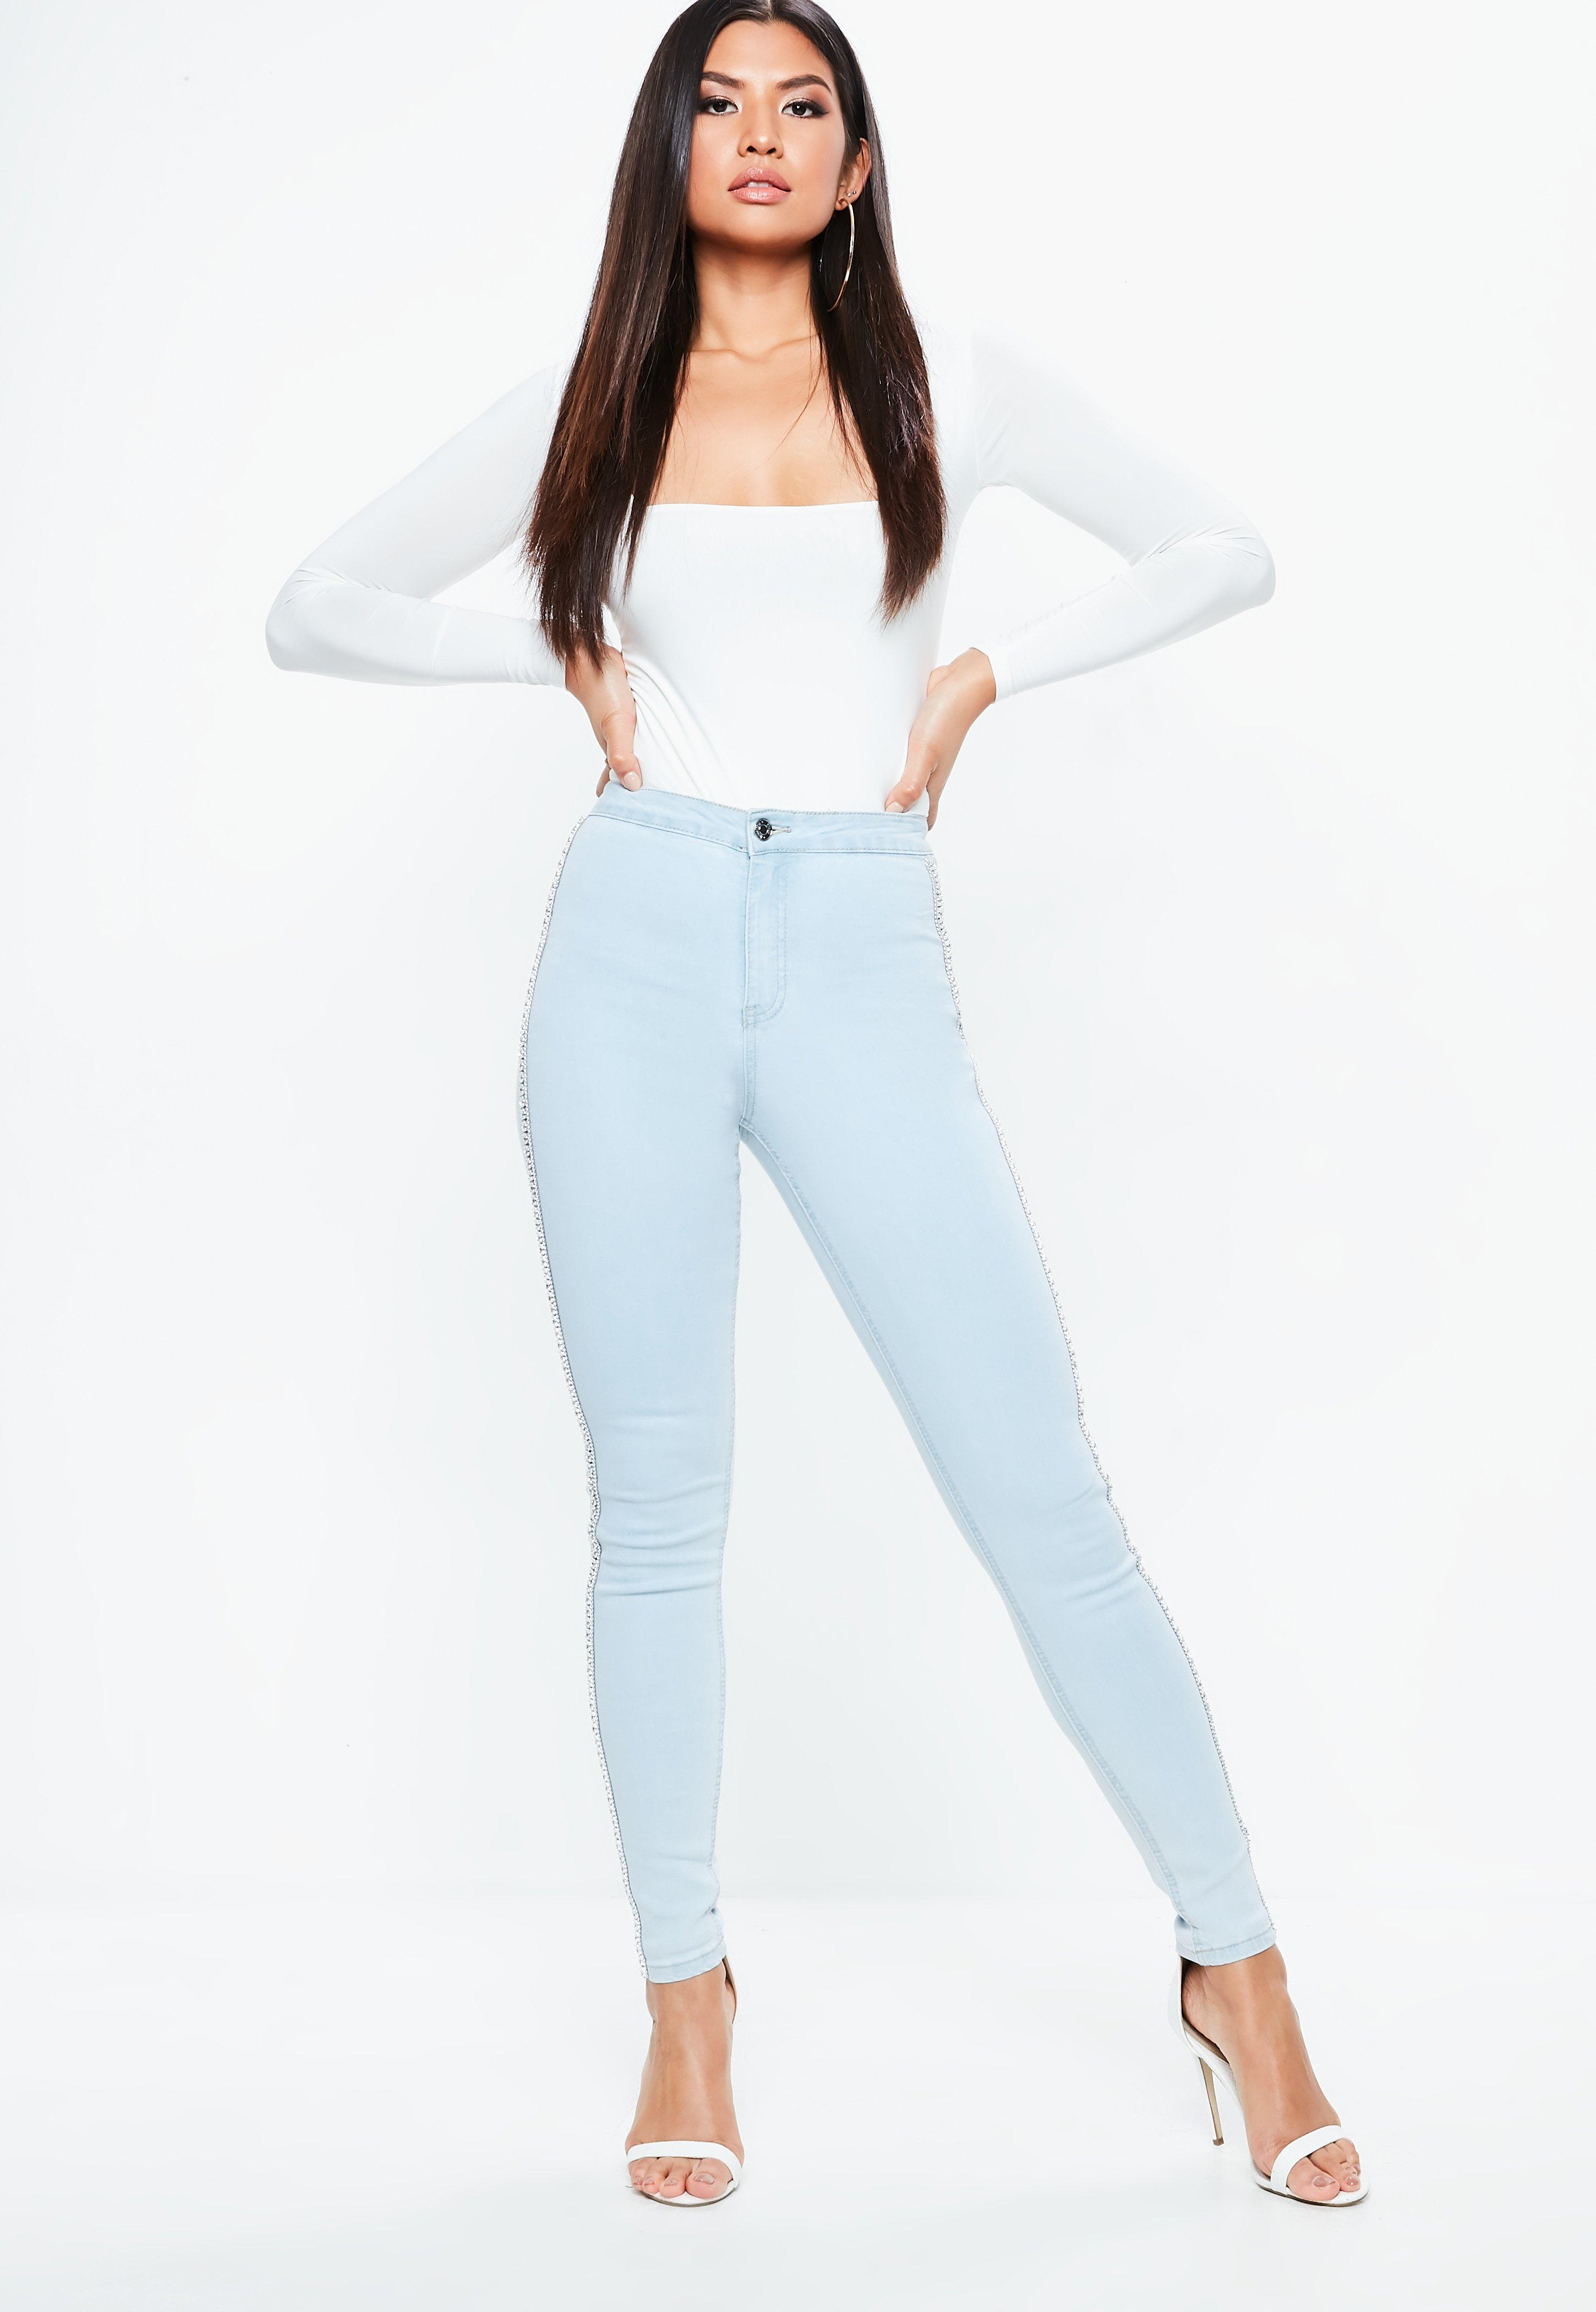 Missguided Embellished Side Skinny Jeans Free Shipping Best Sale Buy Sale Online Free Shipping Find Great Sale High Quality mv9P8lHk